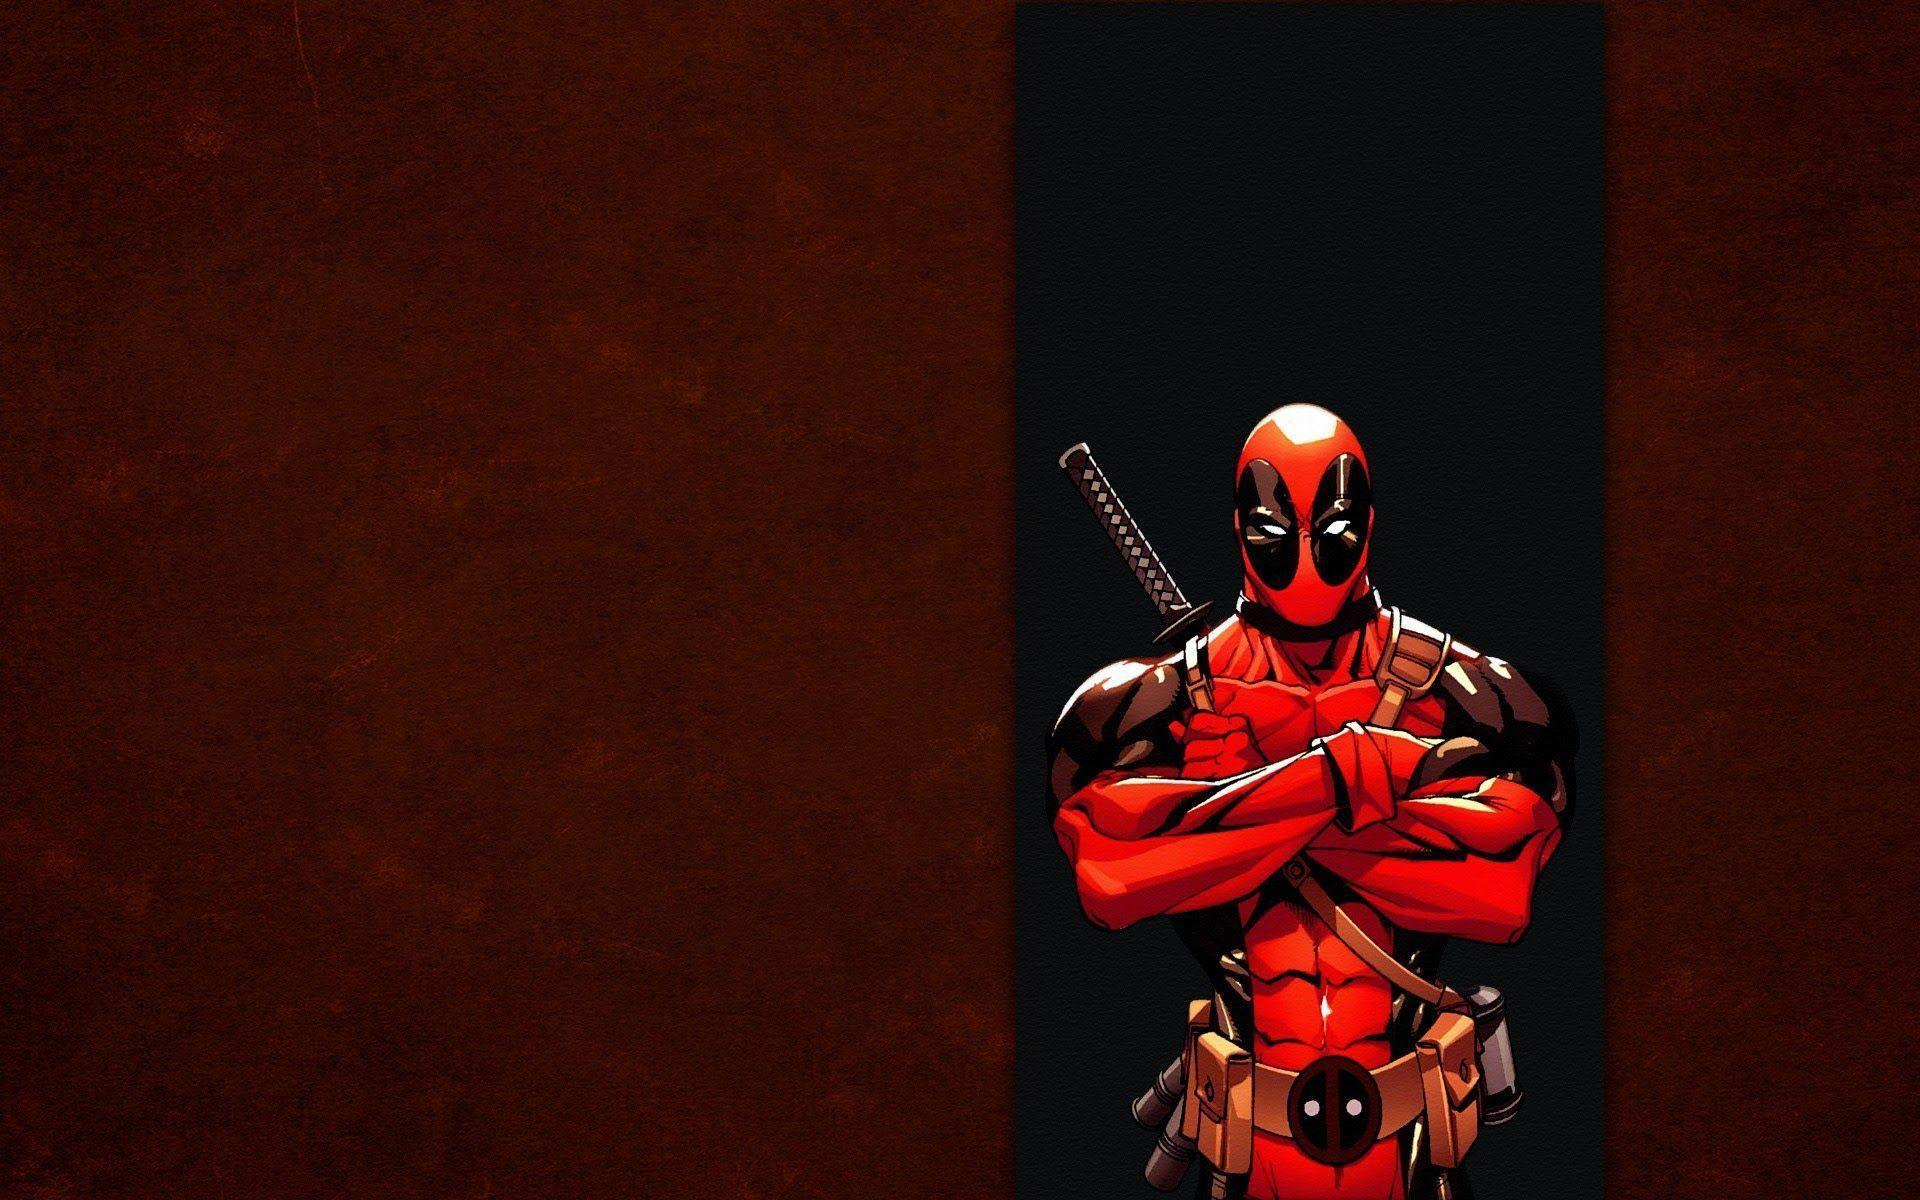 Deadpool Wallpapers Hd Widescreens Resolution Deadpool Wallpapers Hd